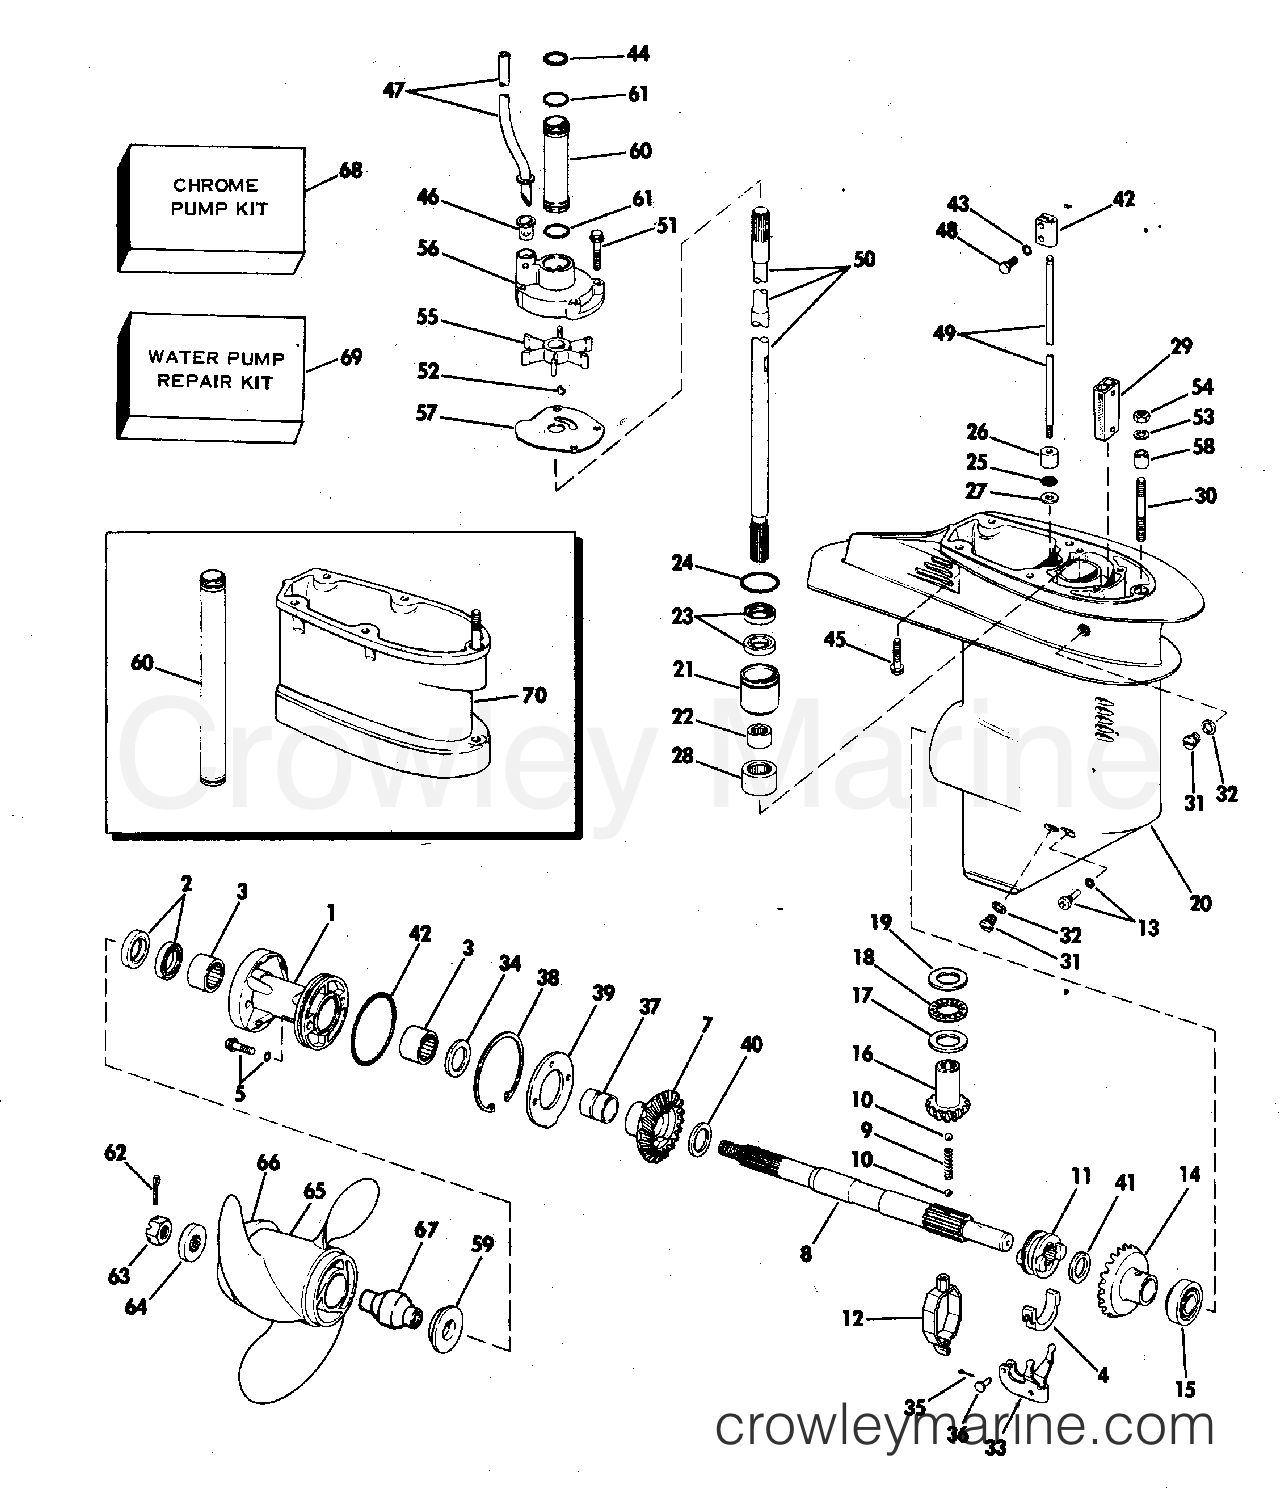 tags: #wiring schematics for johnson outboards#1999 johnson outboard wiring  diagram#johnson outboard motor wiring diagram#1978 johnson outboard wiring